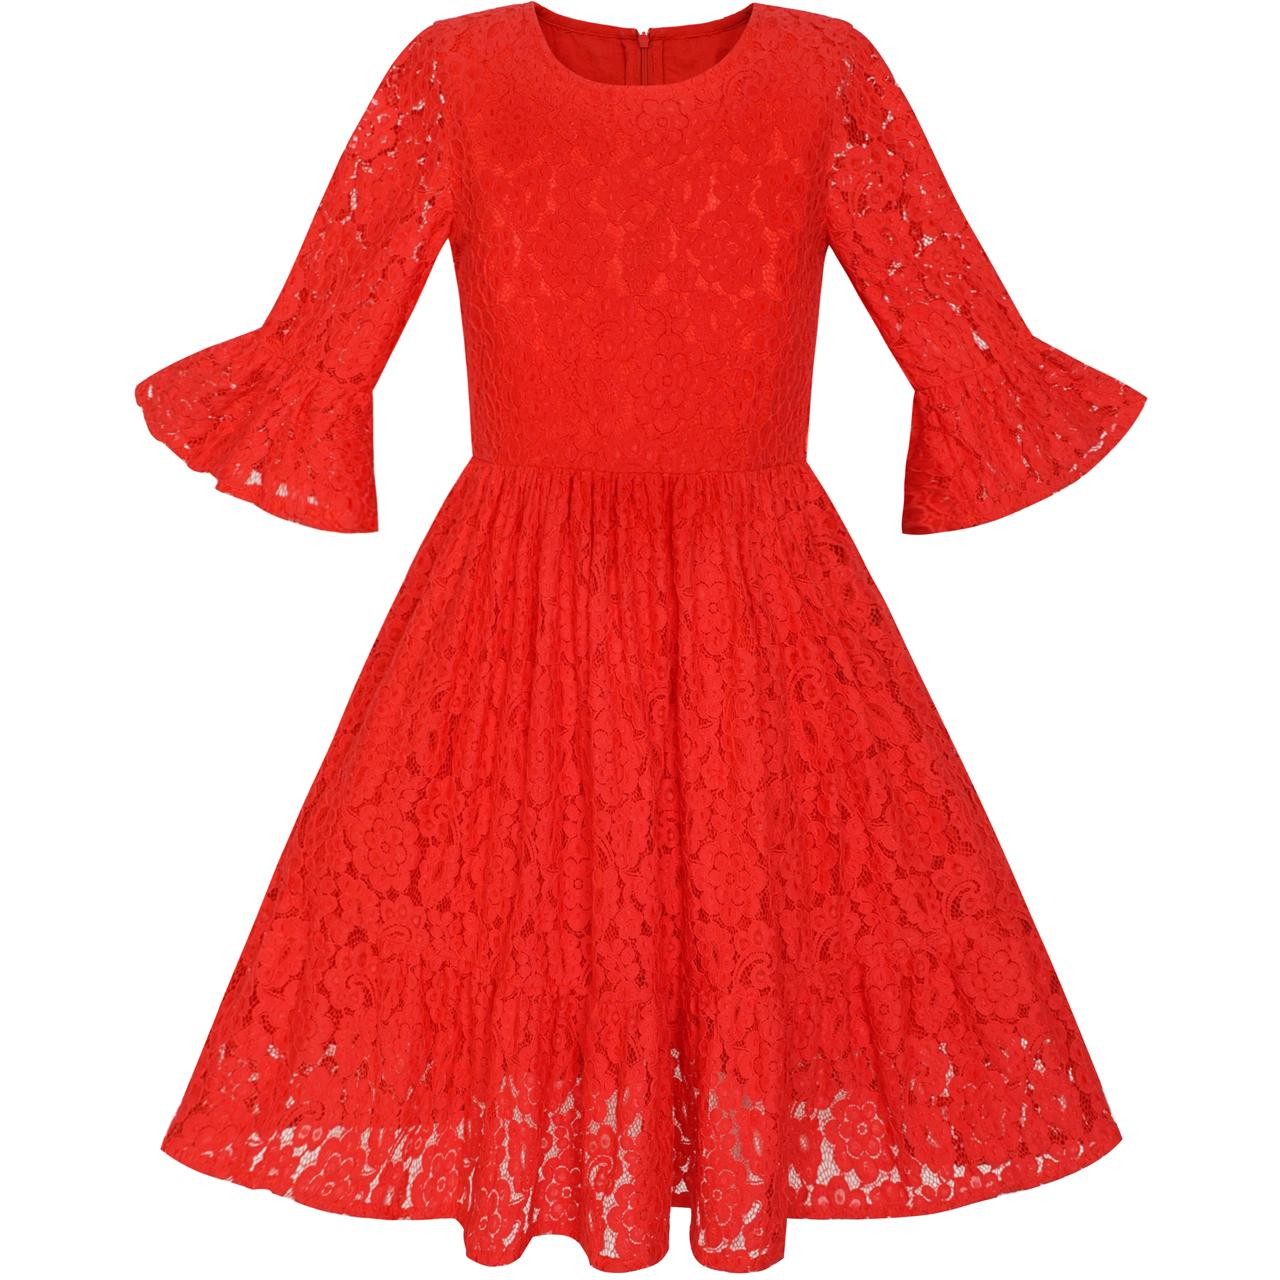 Sunny Fashion Flower Girl Dress Red Bell Sleeve Lace Ruffle Holiday Dress 2018 Summer Princess Wedding Party Size 5-12 bell sleeve rib knit dress